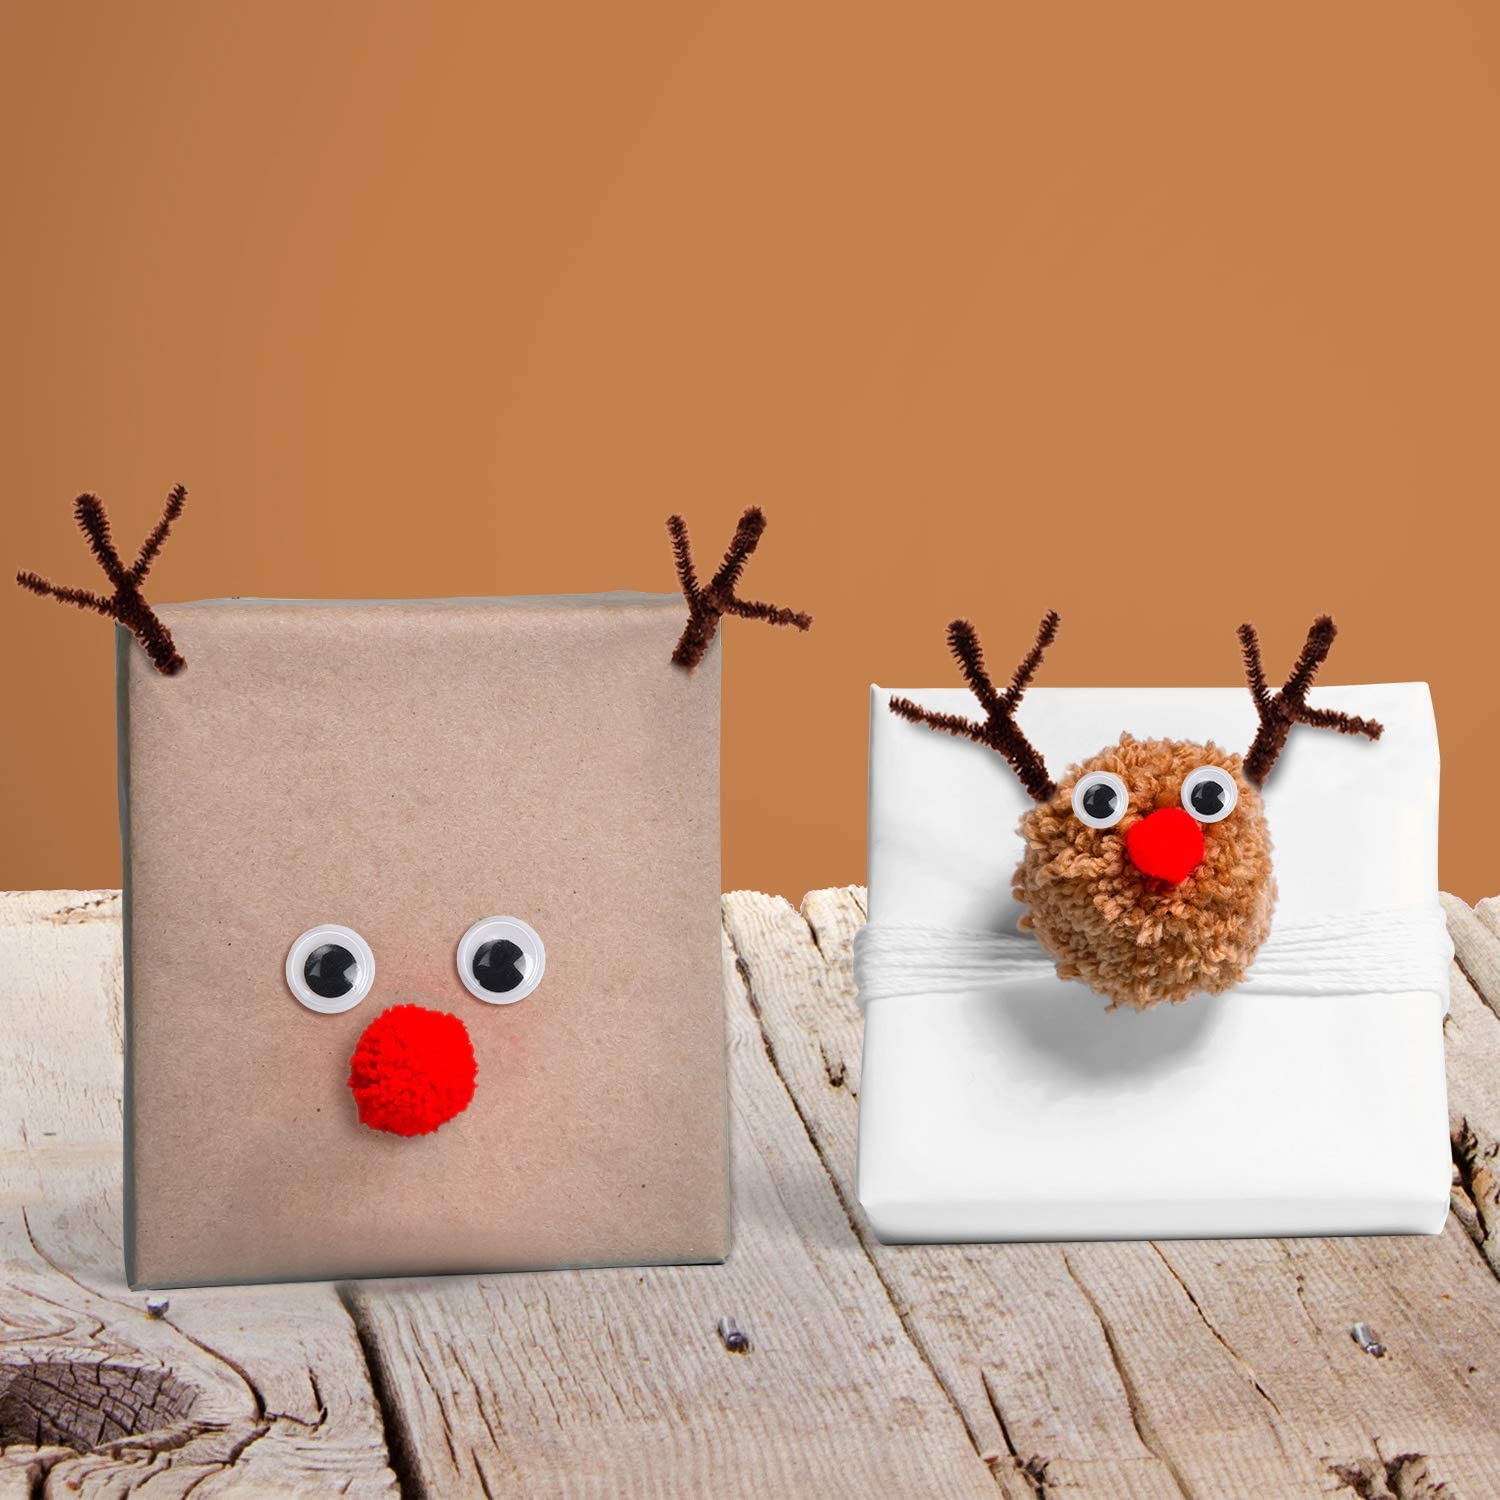 150 Pieces Brown Pipe Cleaners Chenille Stems 150 Pieces Red Pom Poms Assorted Size Craft Pompoms and 300 Pieces Wiggle Googly Eyes with Self-Adhesive Back for Christmas Reindeer Crafts DIY Making